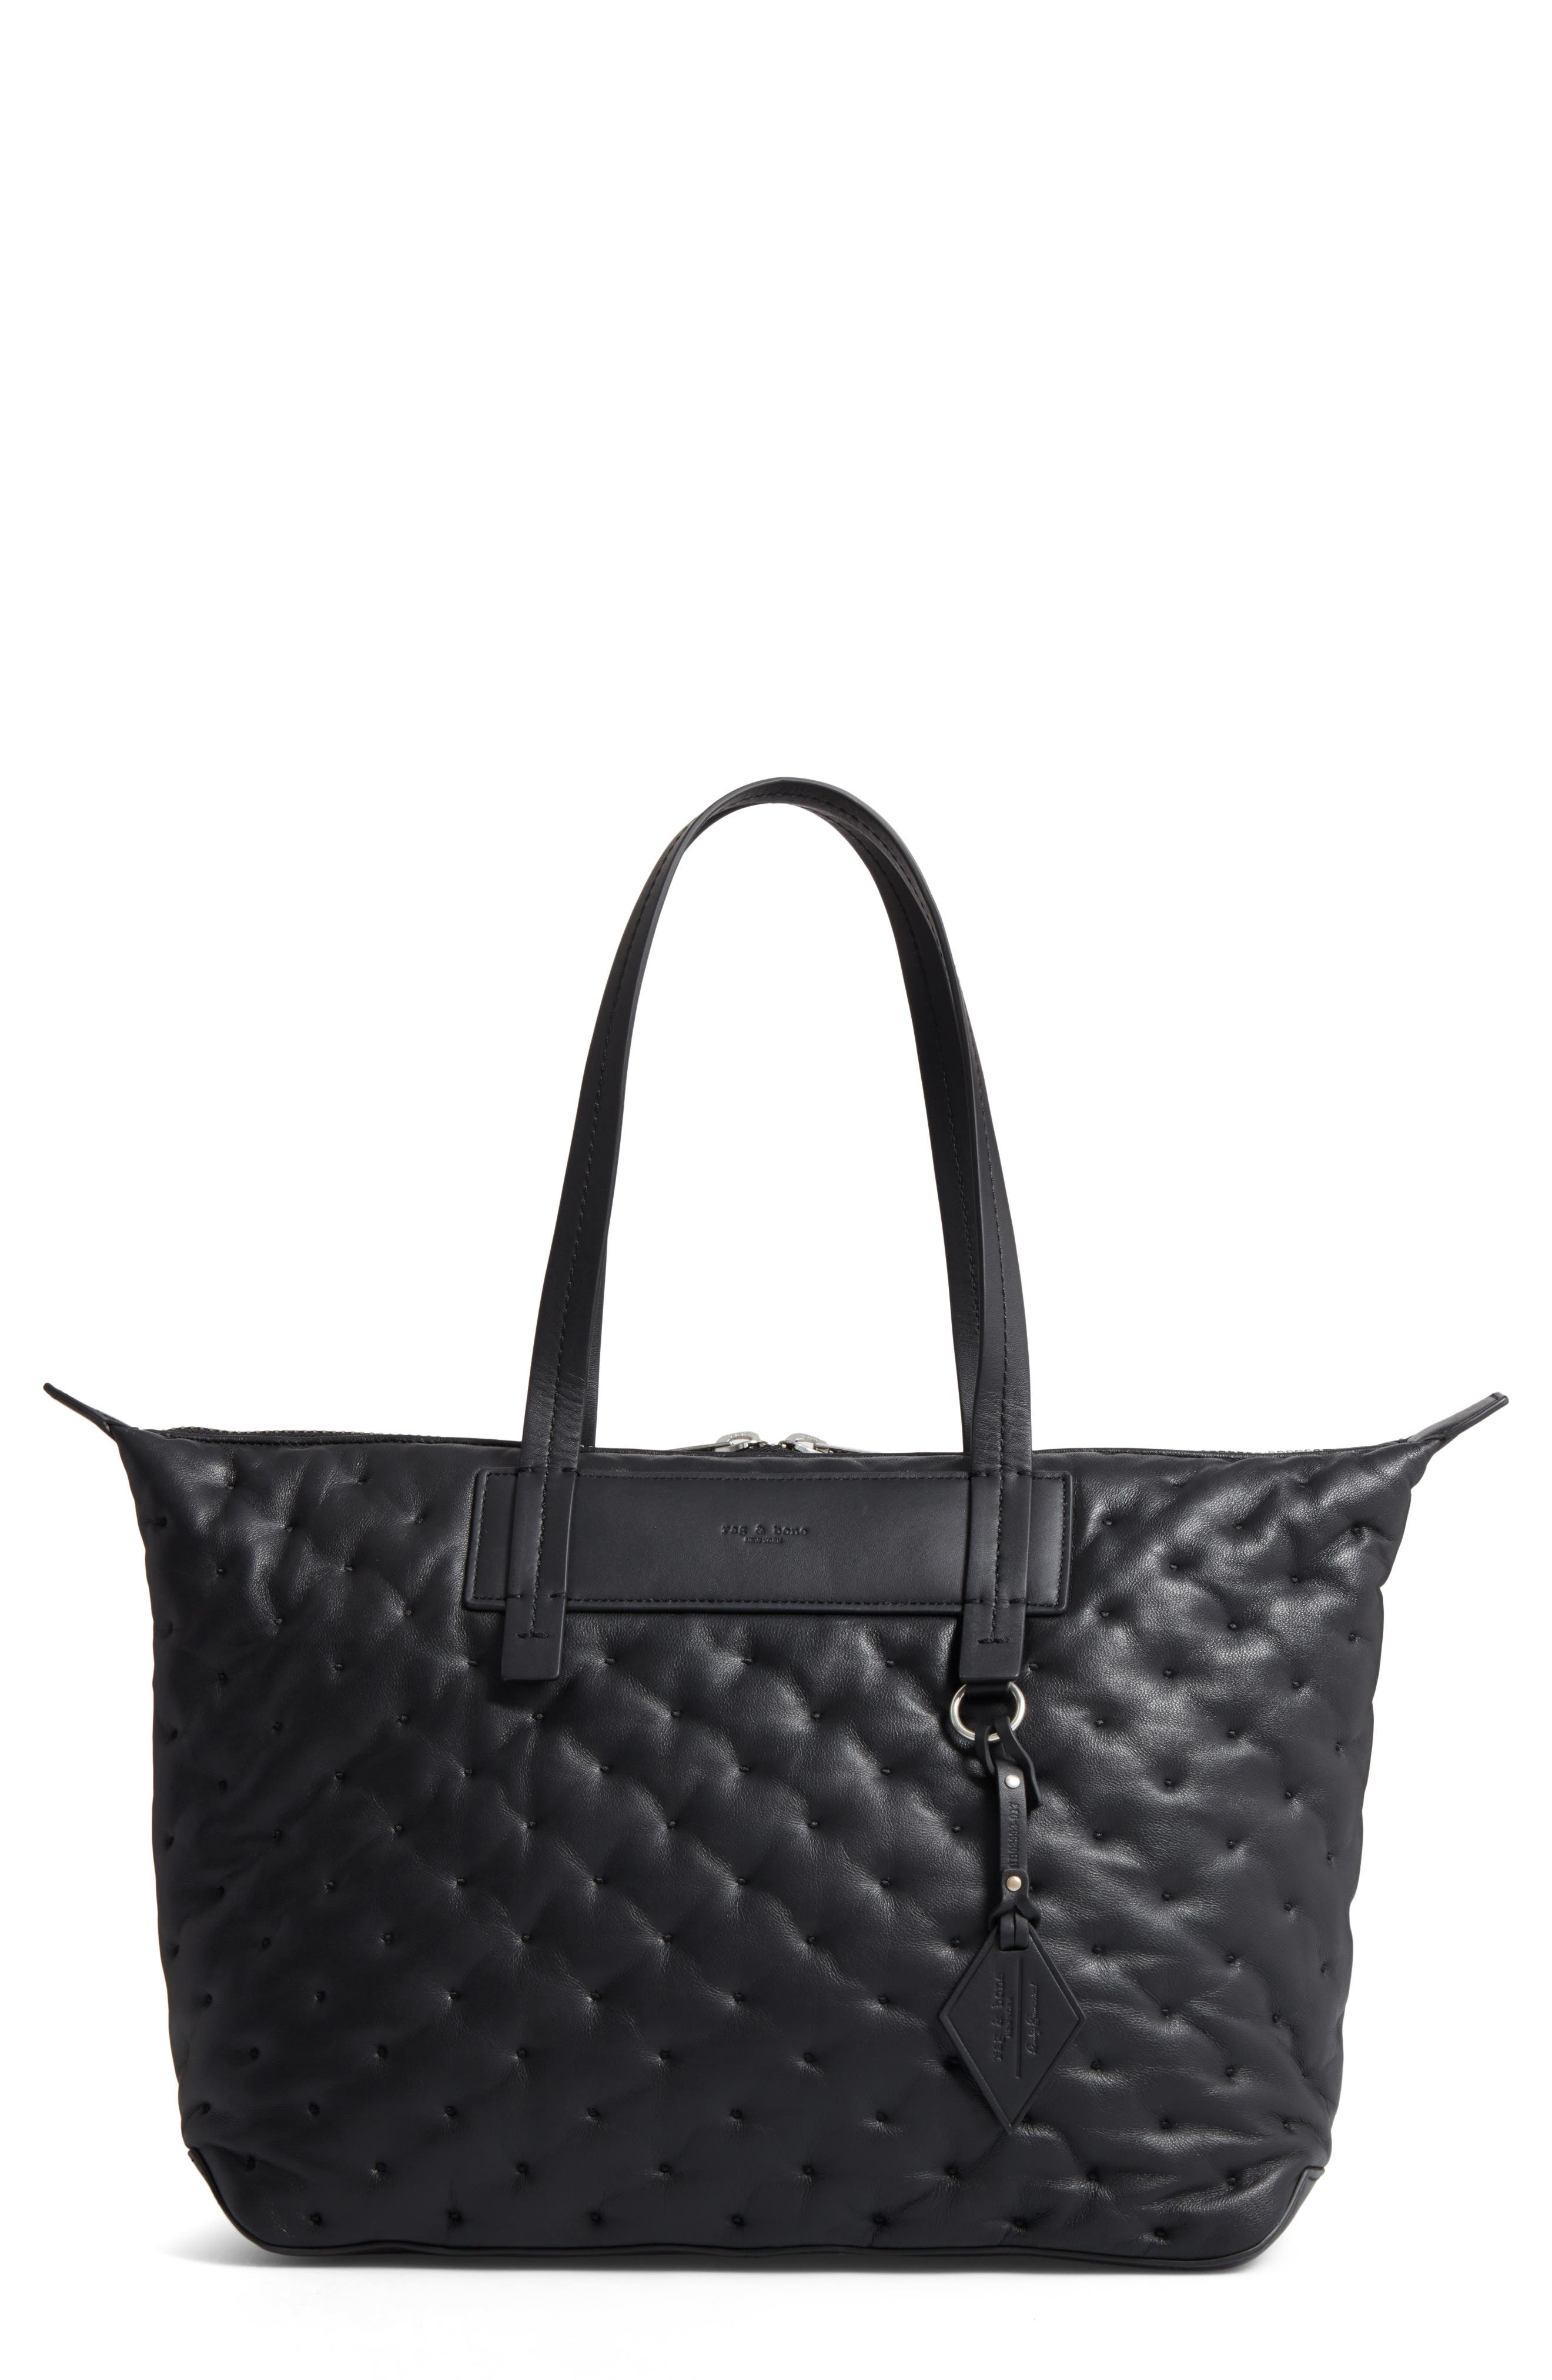 Main Image - rag & bone Compass Everyday Leather Tote